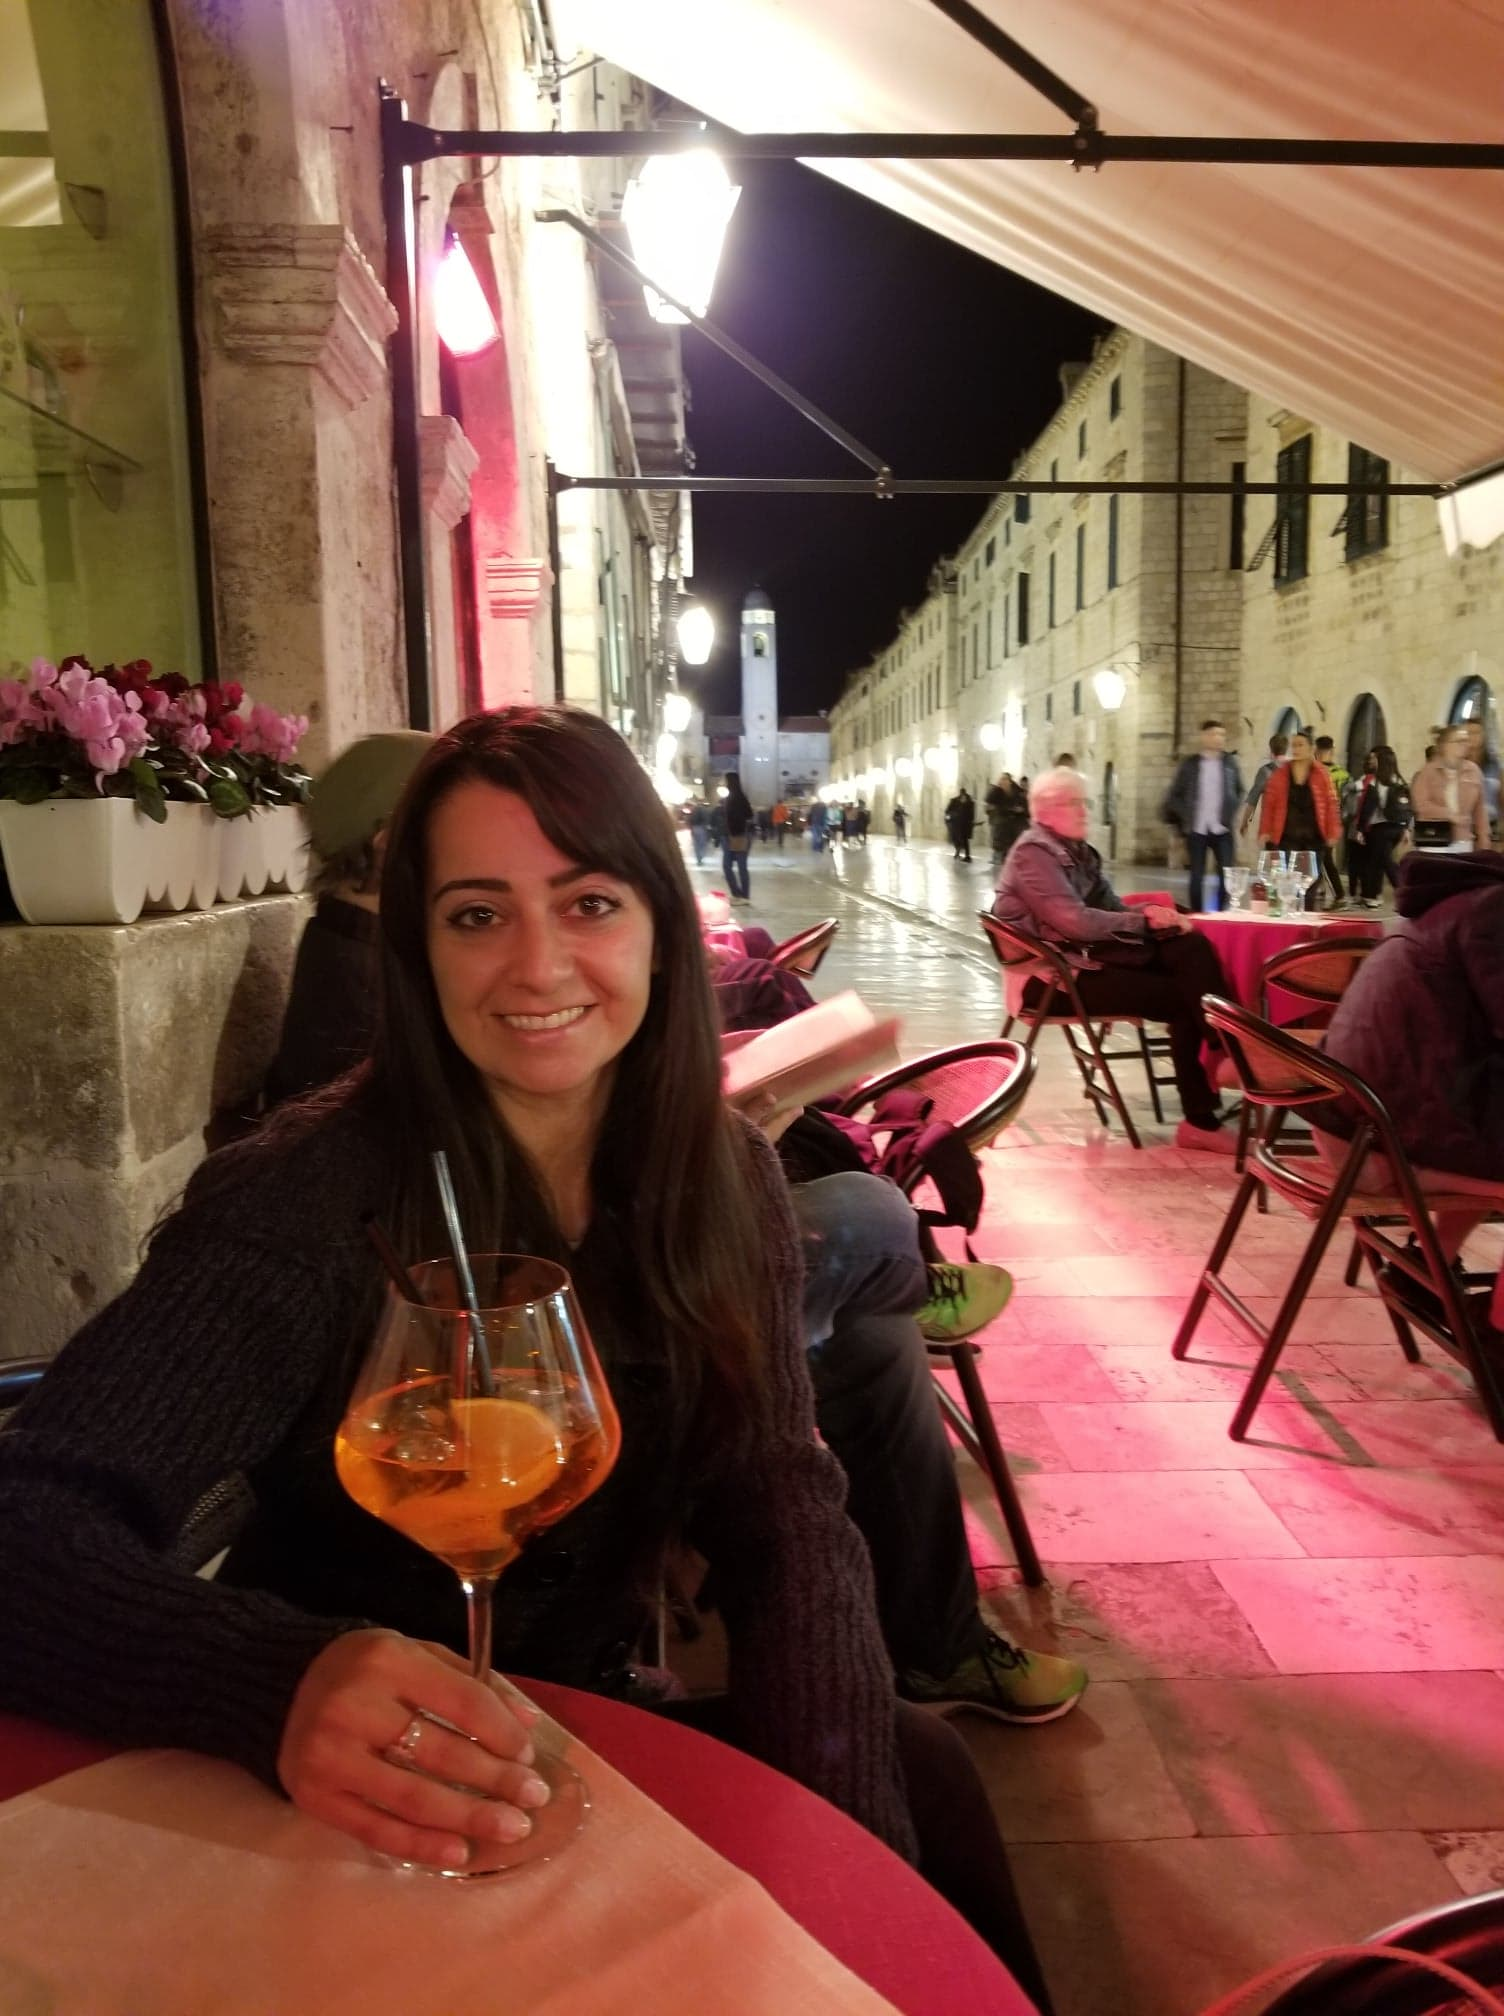 Evening drinks in Olt Town Dubrovnik